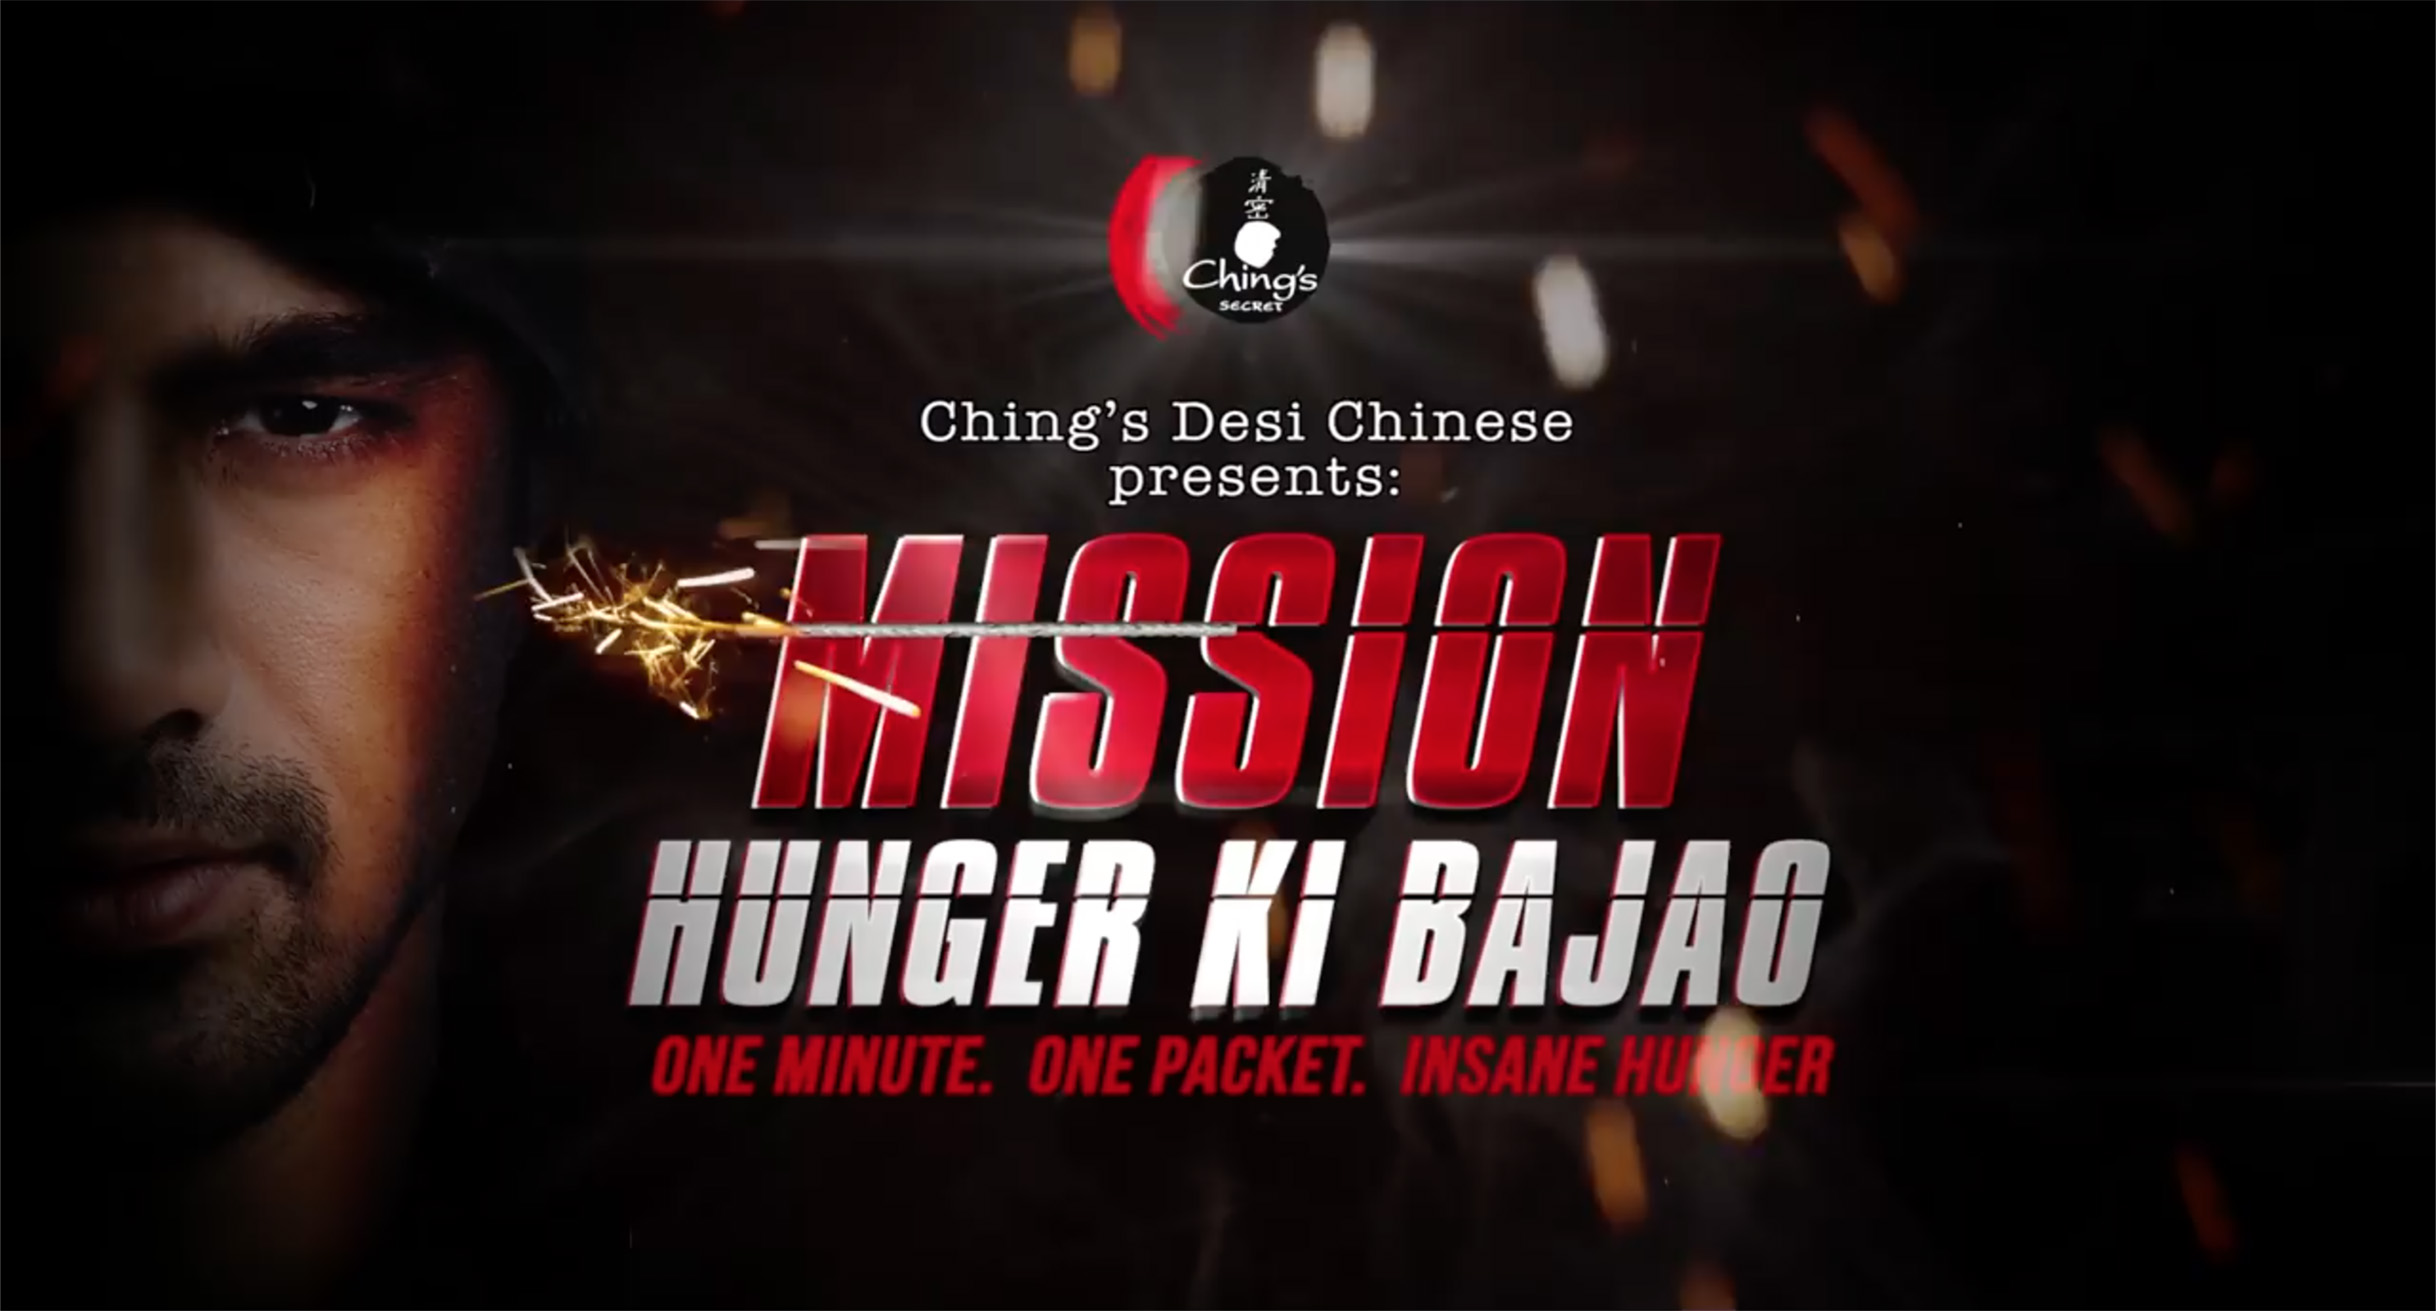 Chings Desi Chinese - Hunger Ki Bajao Cover